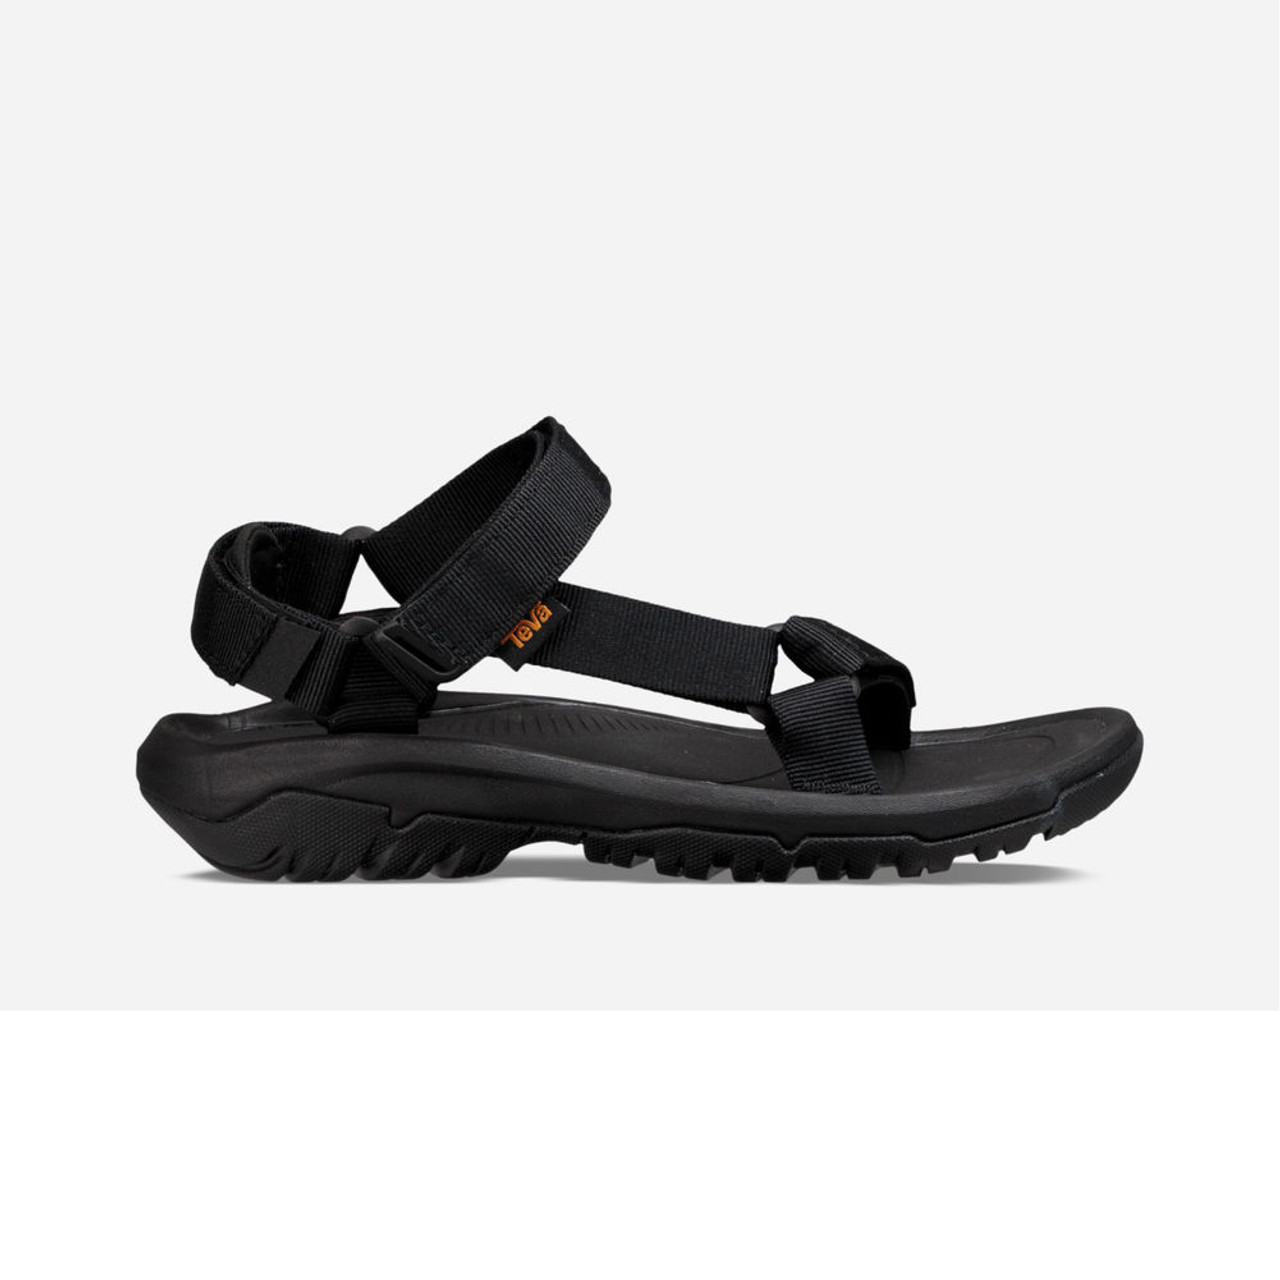 eae4d40b9b58 Teva Women s Hurricane XLT 2 Sport Sandal Lago Black - Shop now   Shoolu.com